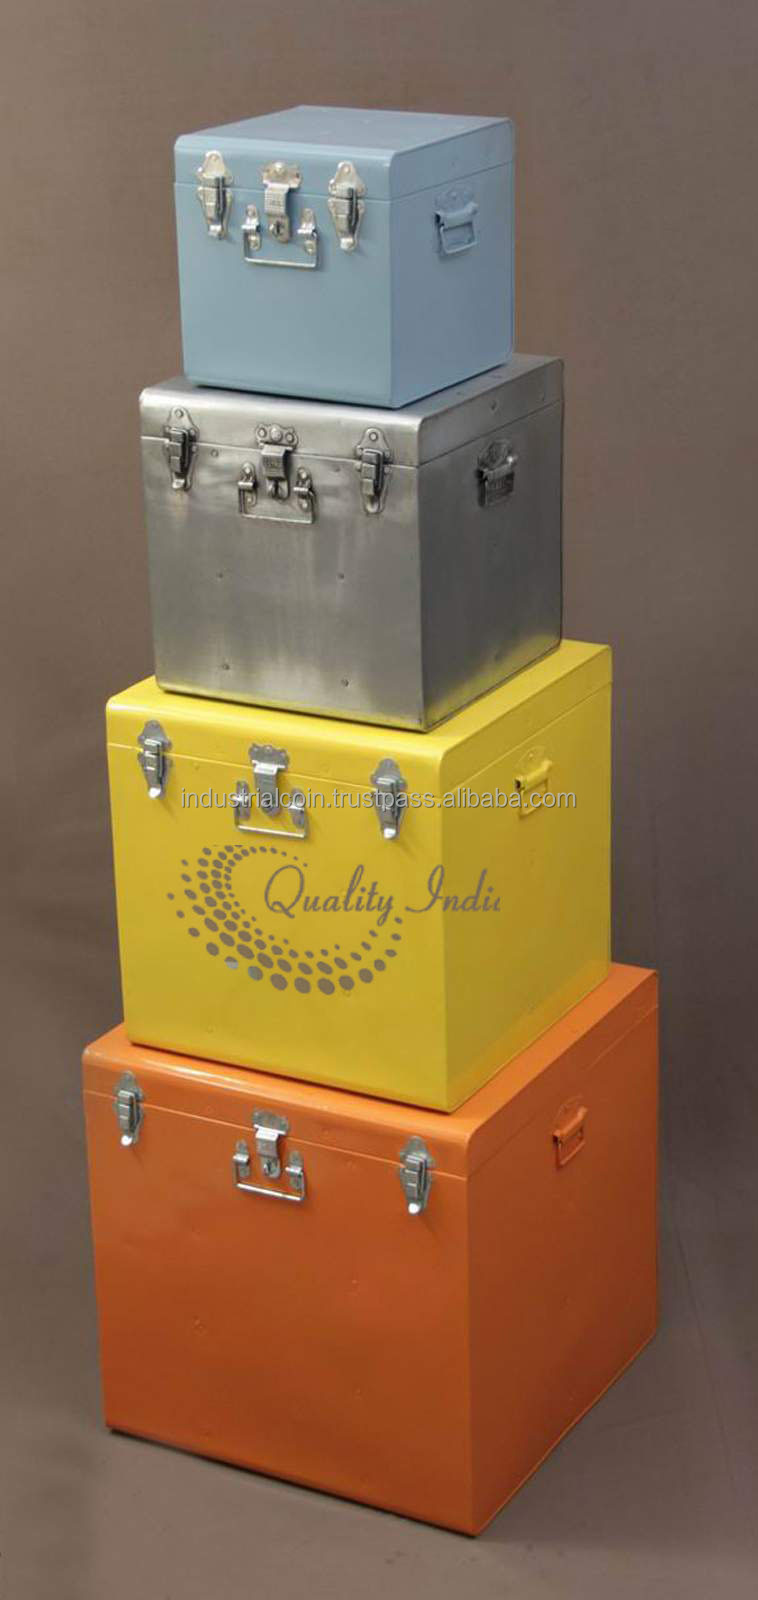 Metallic Multi Colour Boxes of Different Sizes